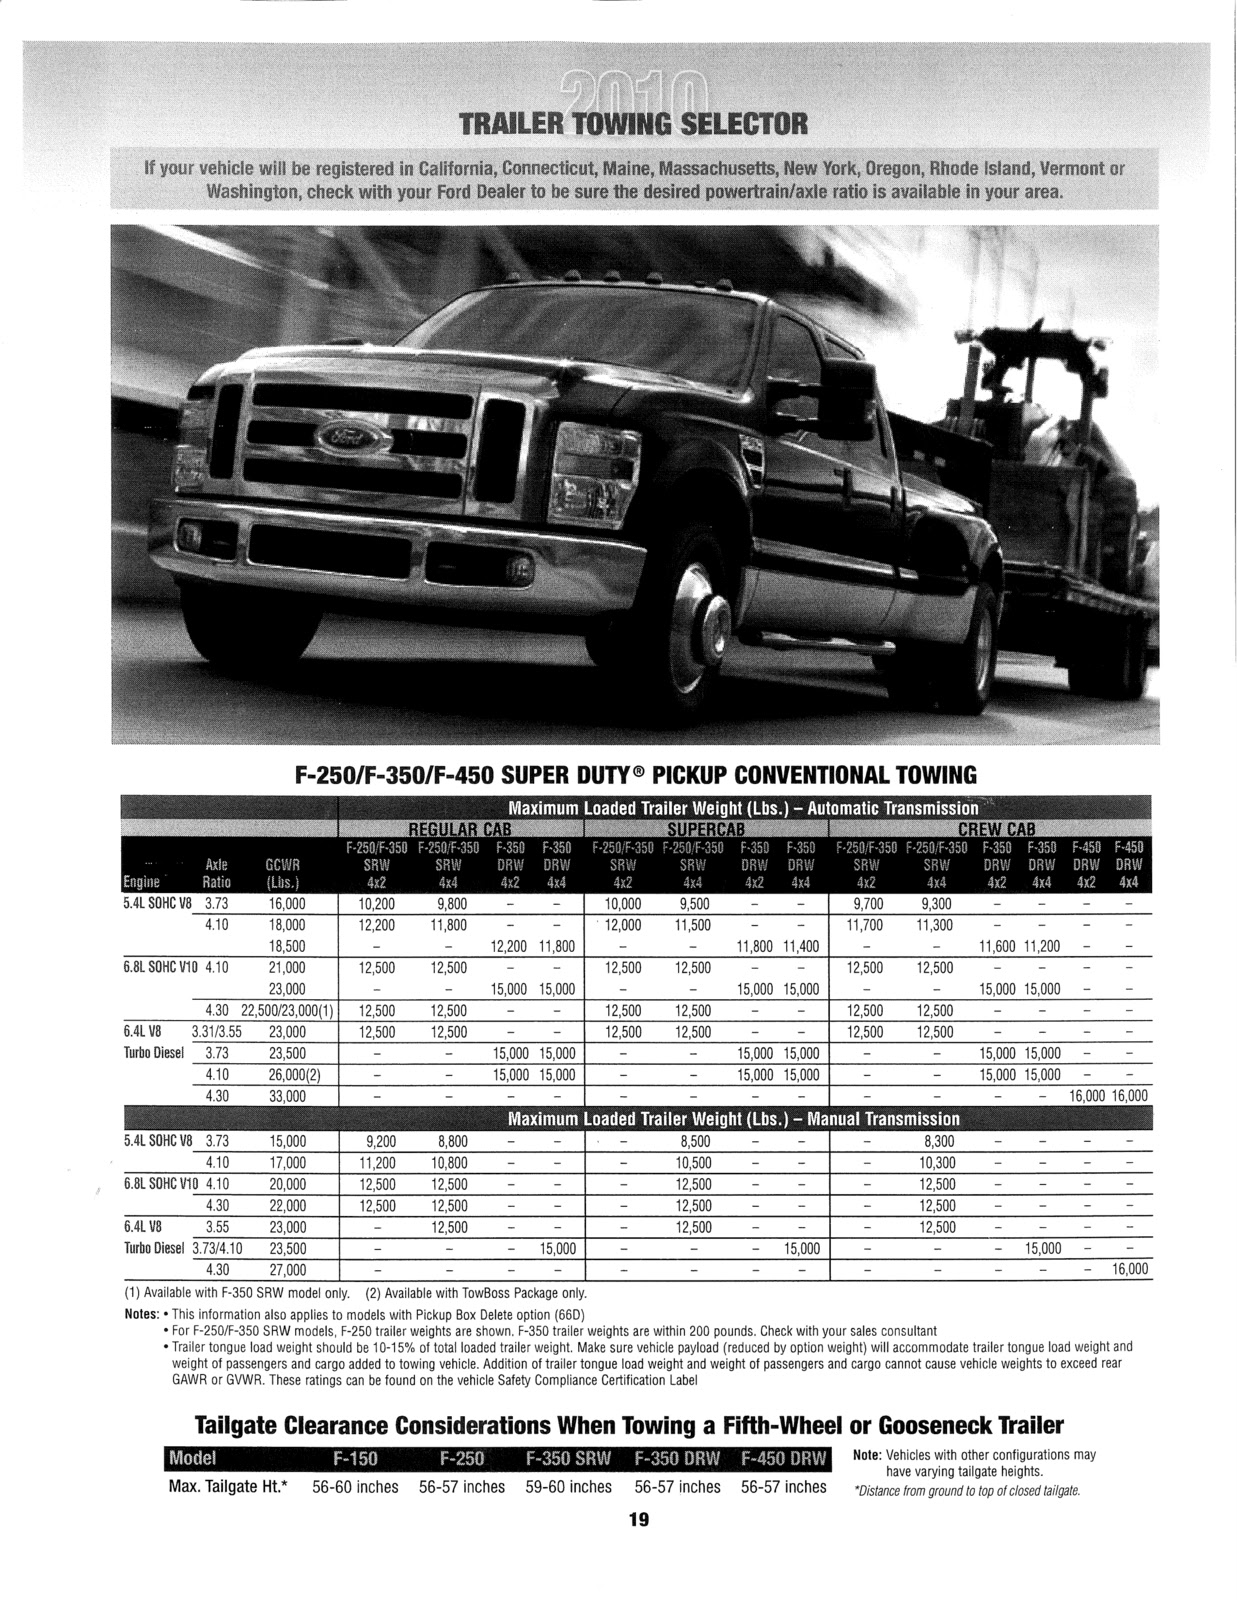 ed koehn ford lincoln 2010 ford super duty pickup towing guide. Black Bedroom Furniture Sets. Home Design Ideas